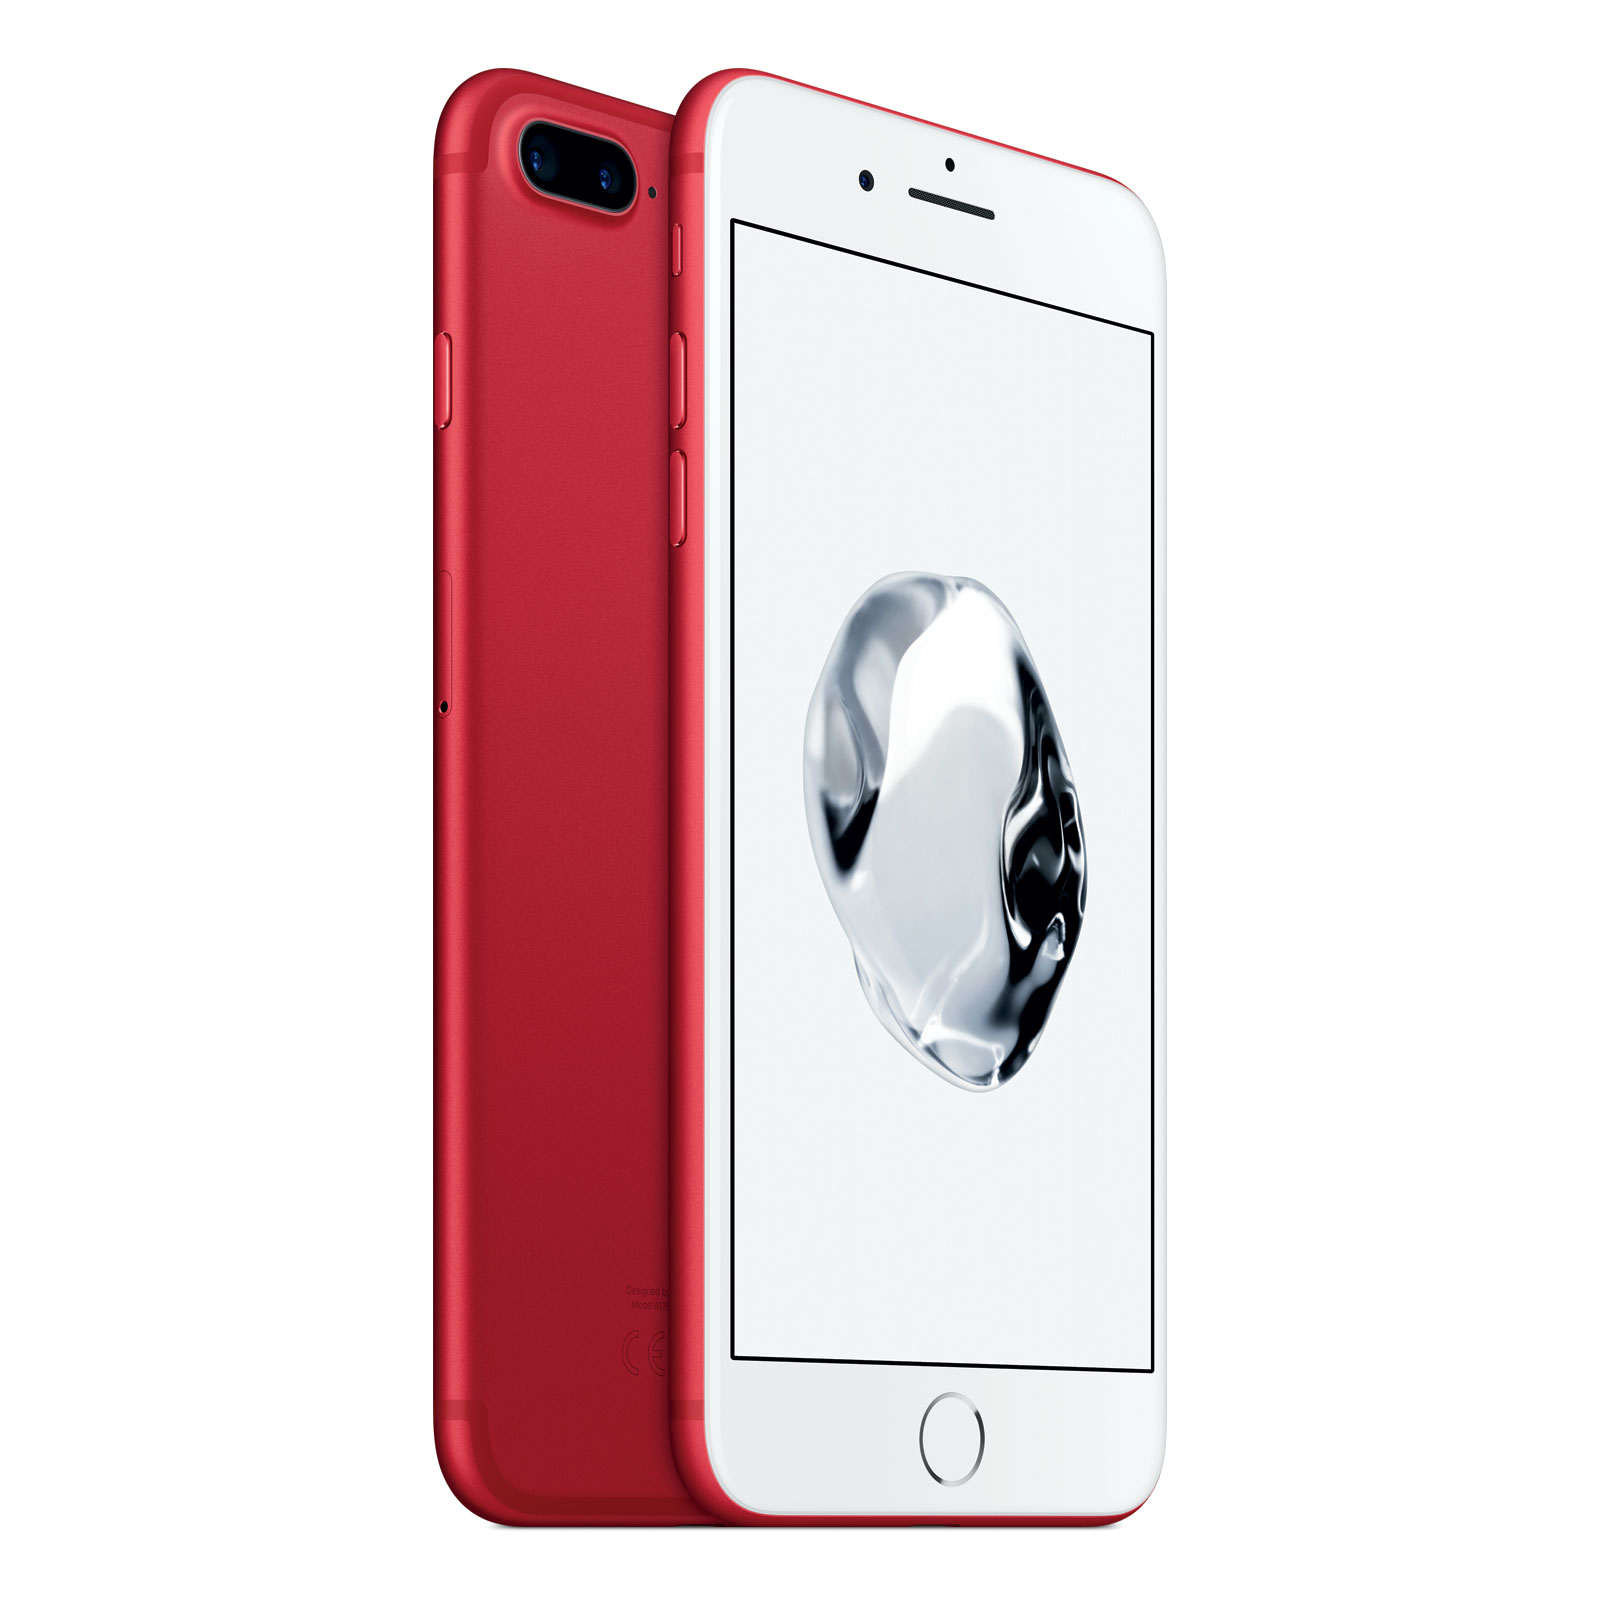 apple iphone 7 plus 256 go rouge special edition mobile smartphone apple sur. Black Bedroom Furniture Sets. Home Design Ideas